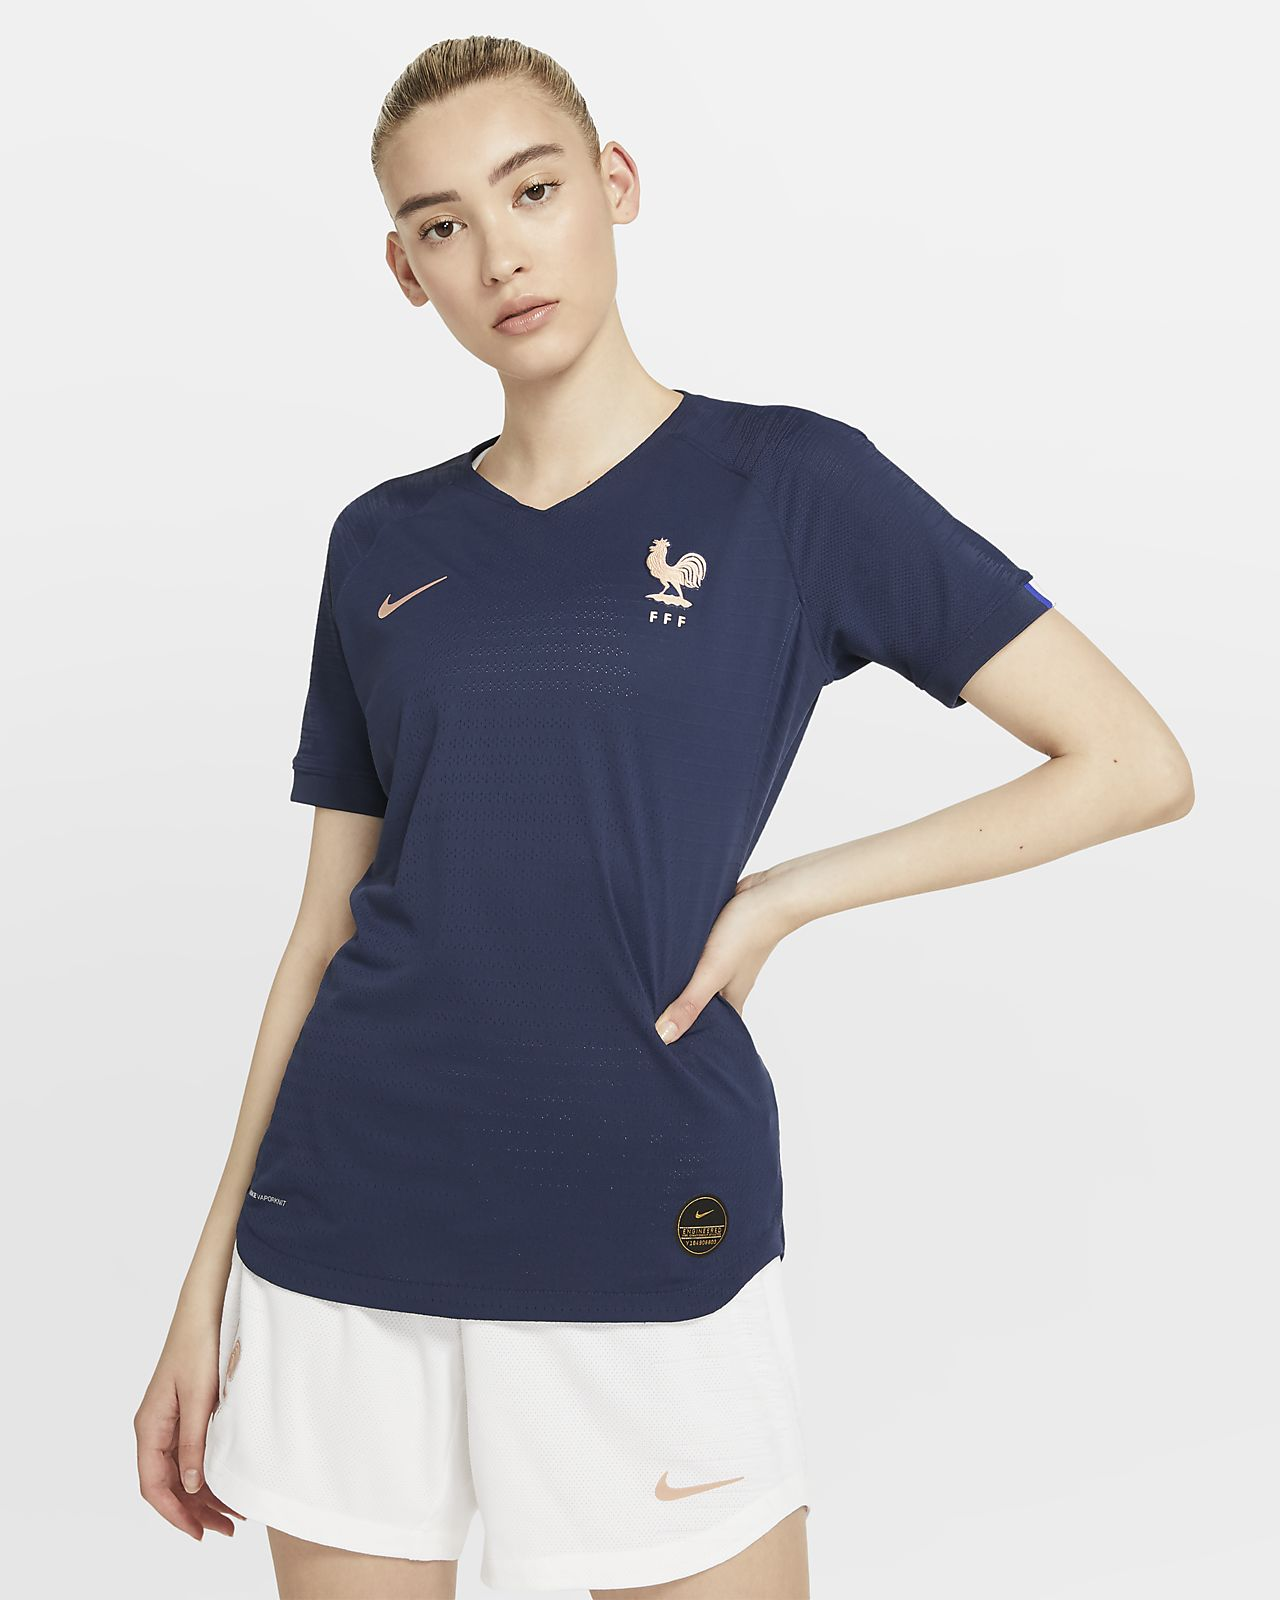 FFF 2019 Vapor Match Home Women's Football Shirt